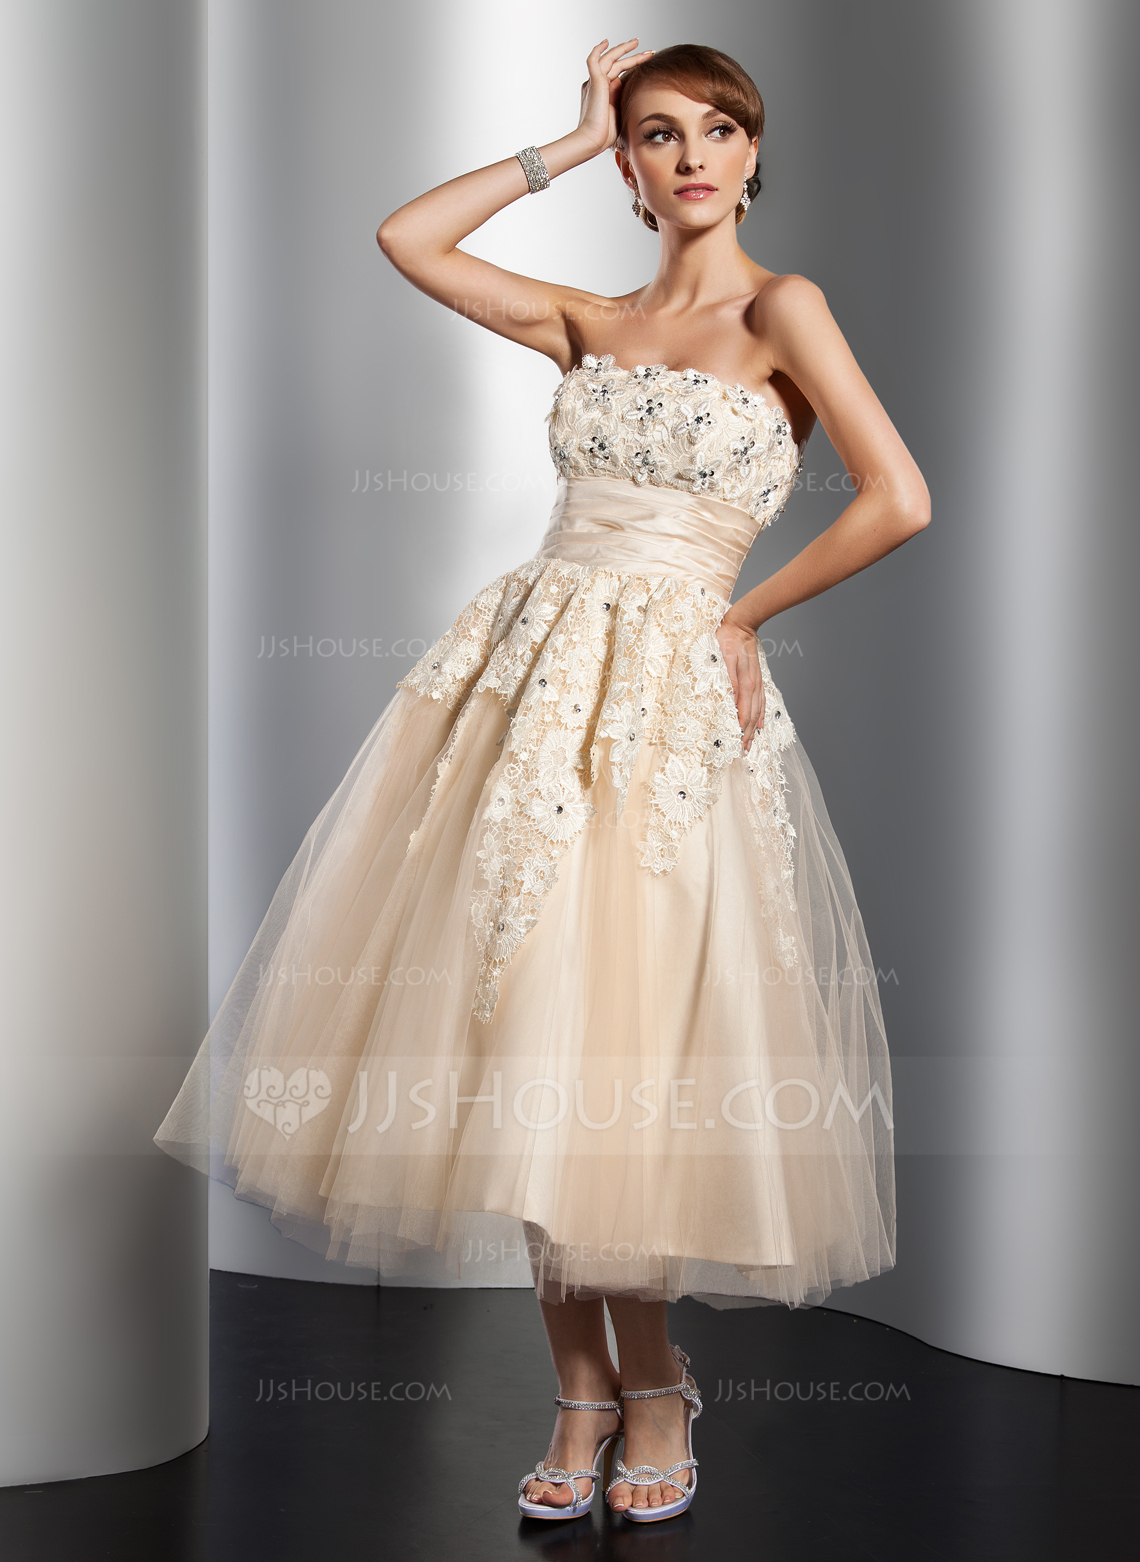 A Line Princess Strapless Tea Length Tulle Wedding Dress With Ruffle Lace Beading Flower S g ruffle wedding dress Home Wedding Dresses Loading zoom